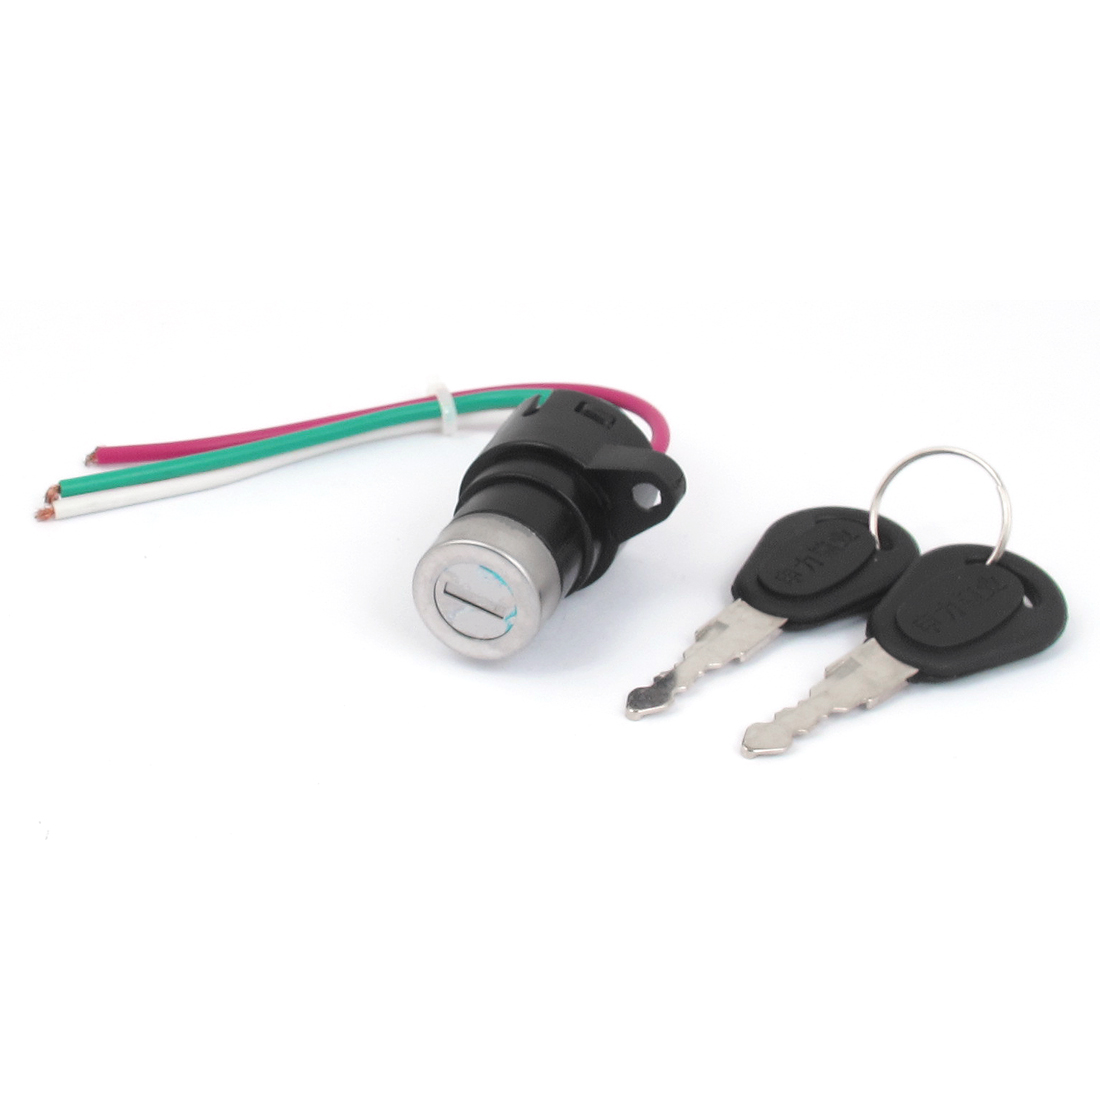 Ignition Start 3-Wire Motorcycle Motorbike Electric Key Switch Lock